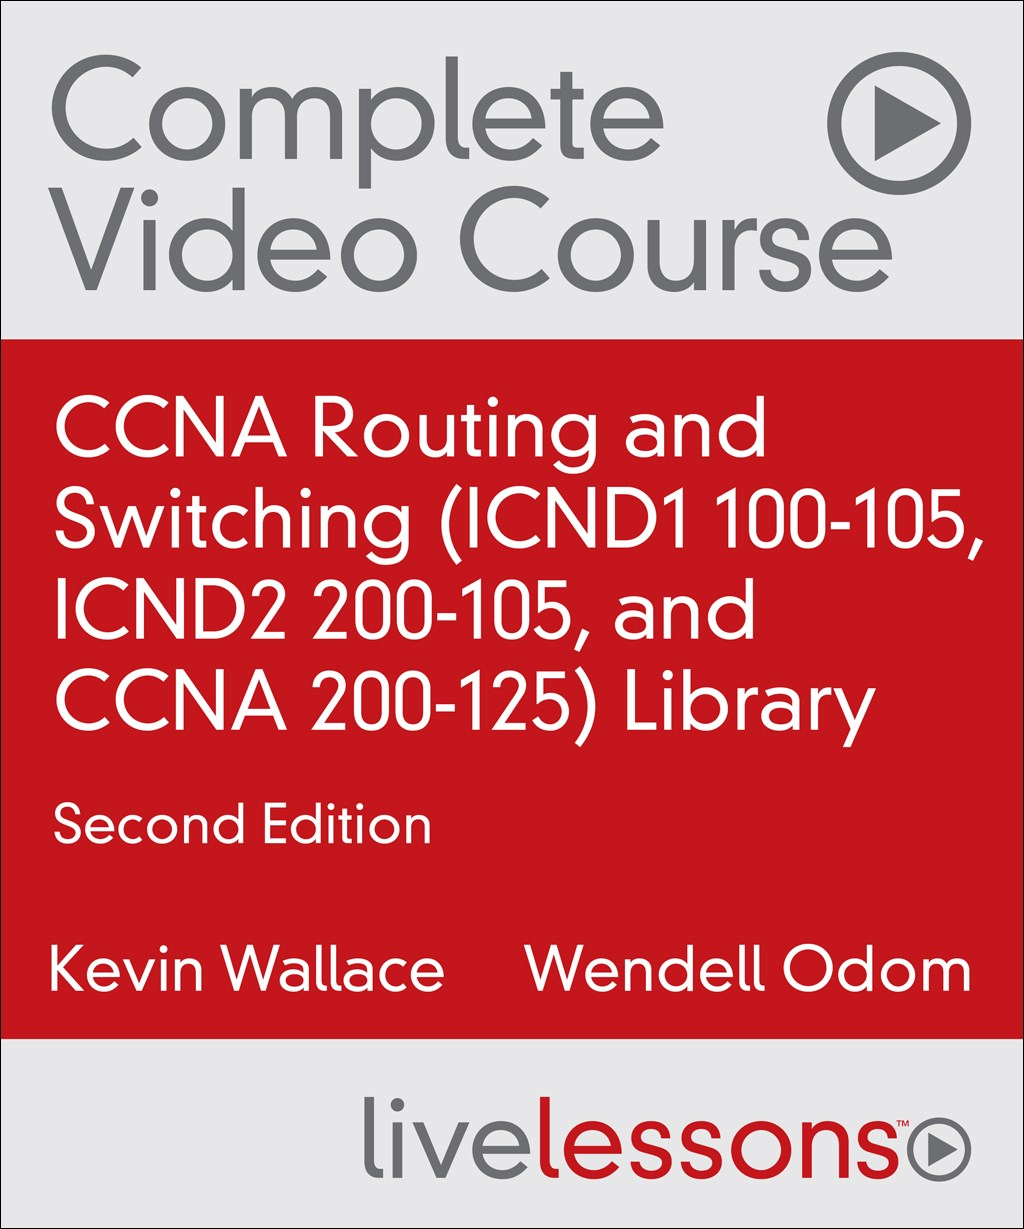 CCNA Routing and Switching (ICND1 100-105, ICND2 200-105, and CCNA 200-125) Library, 2nd Edition